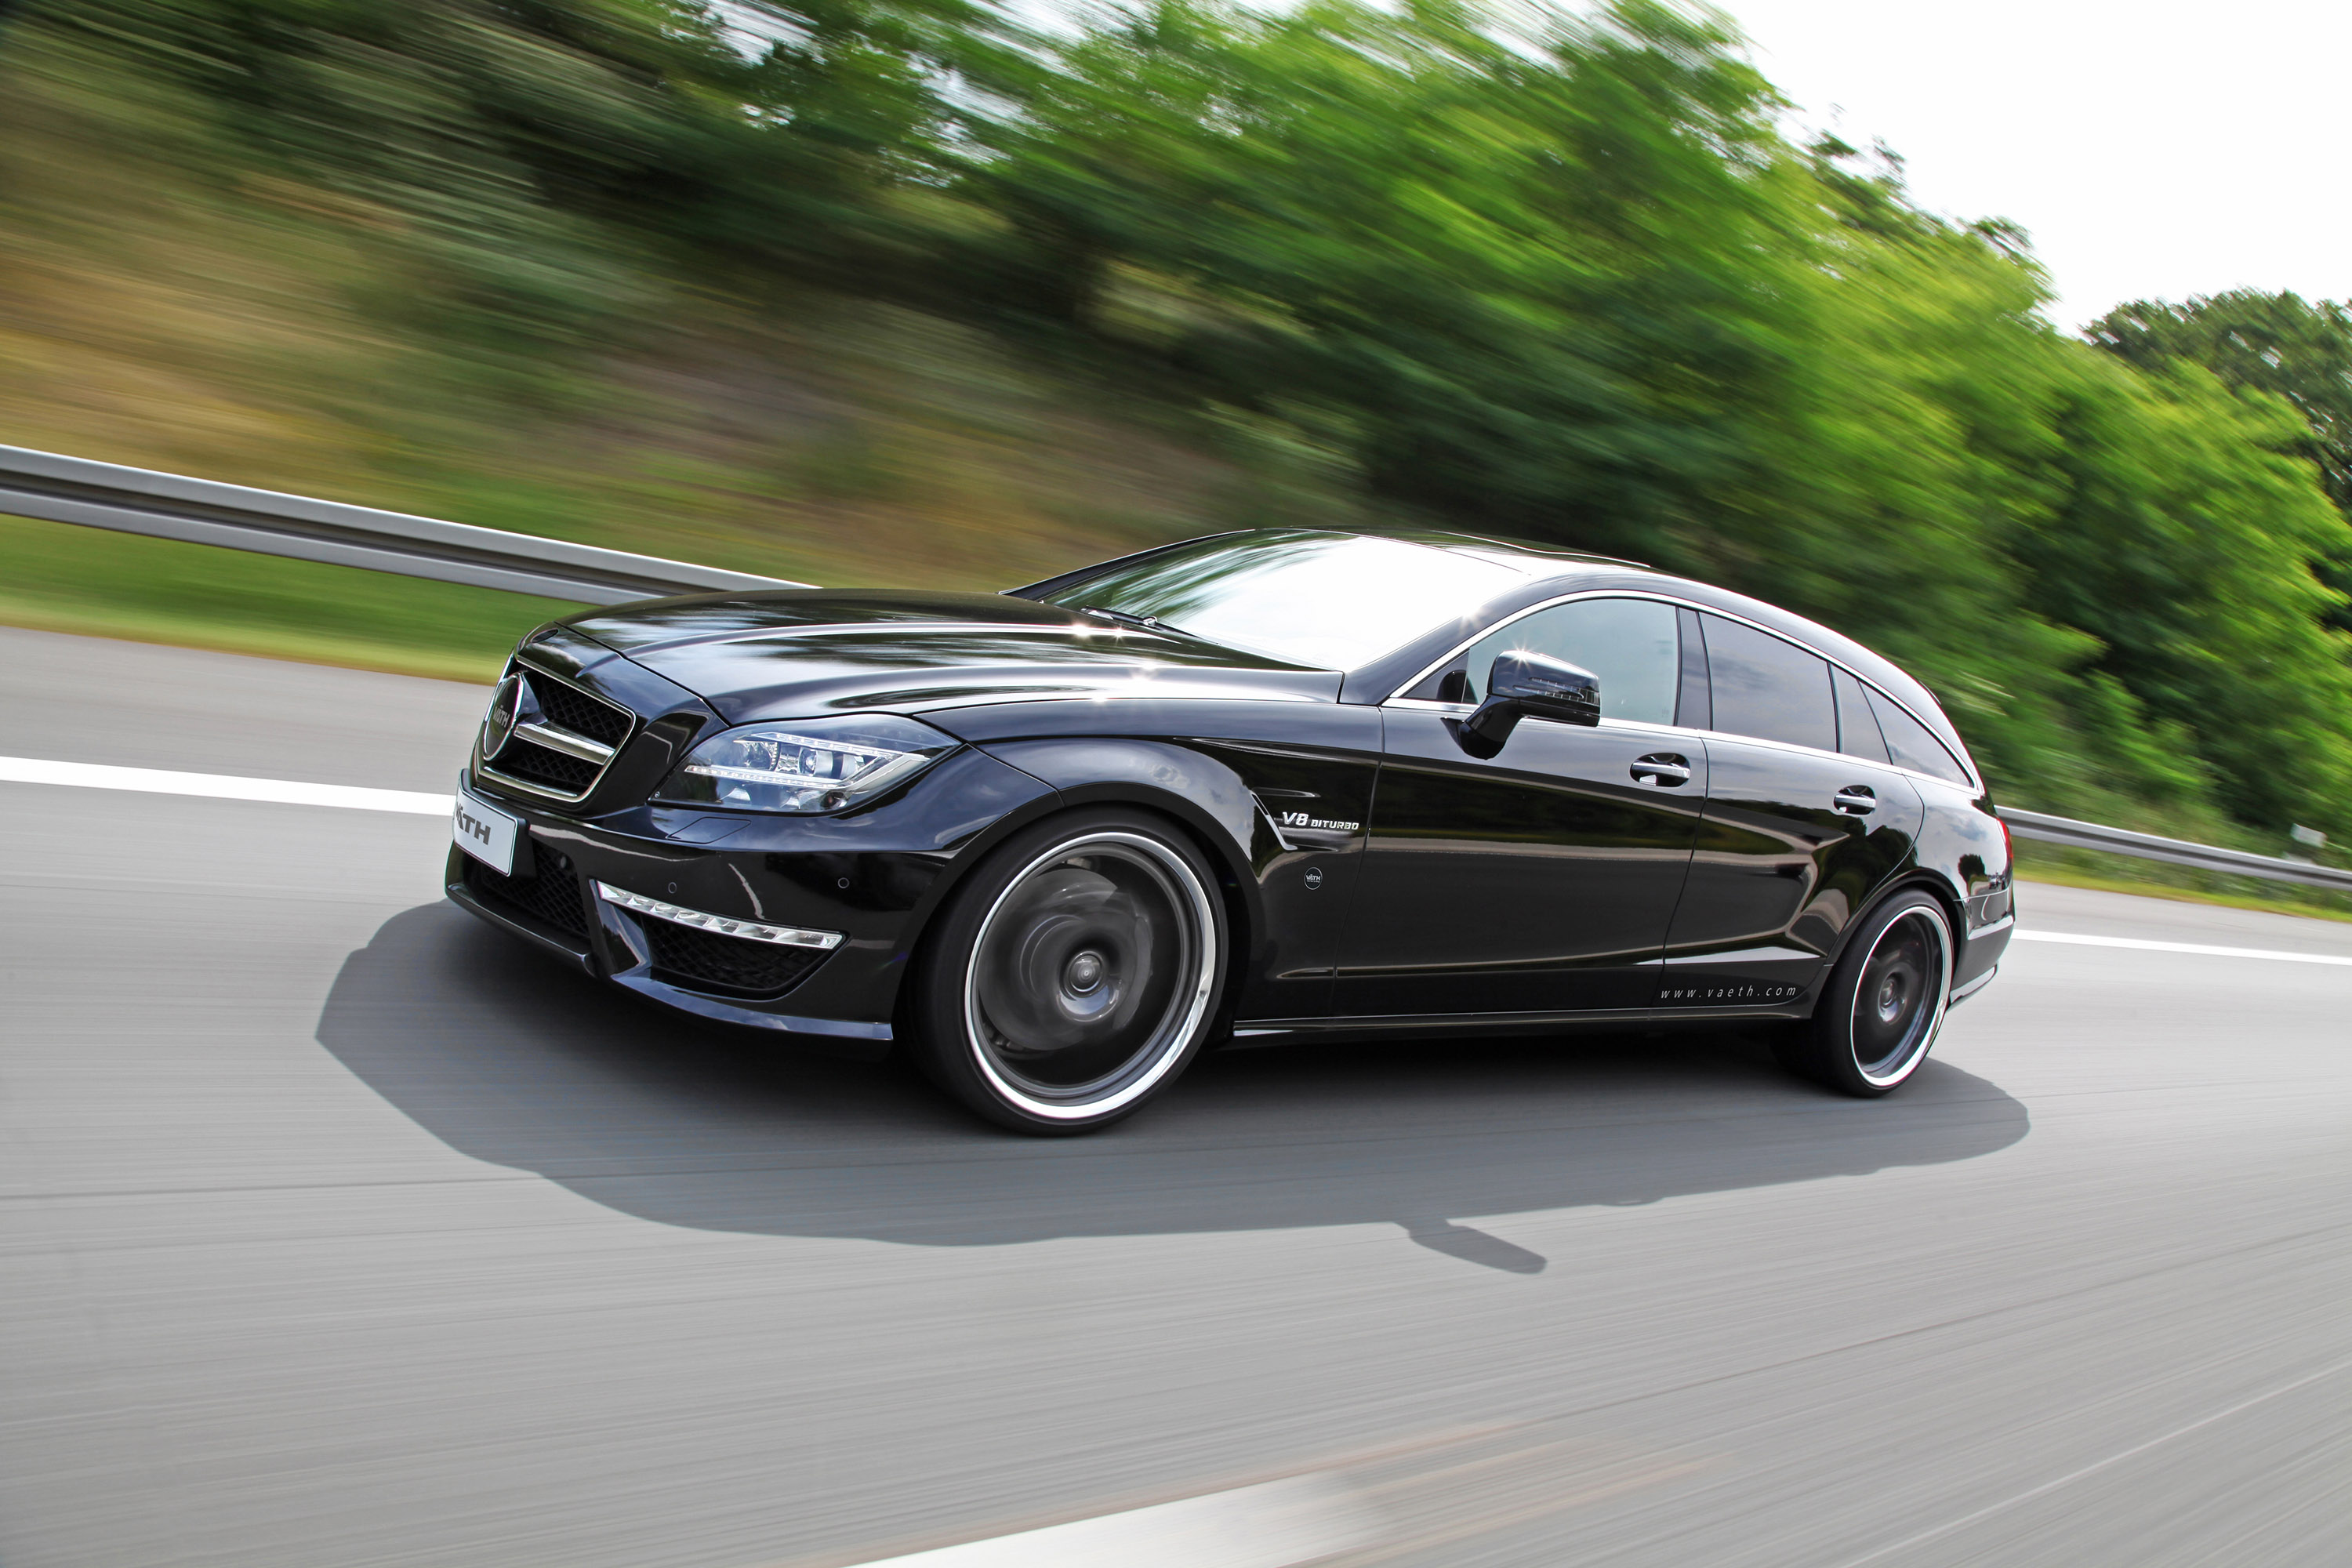 vath mercedes benz cls 63 amg shooting brake 846hp and 1 180nm. Black Bedroom Furniture Sets. Home Design Ideas